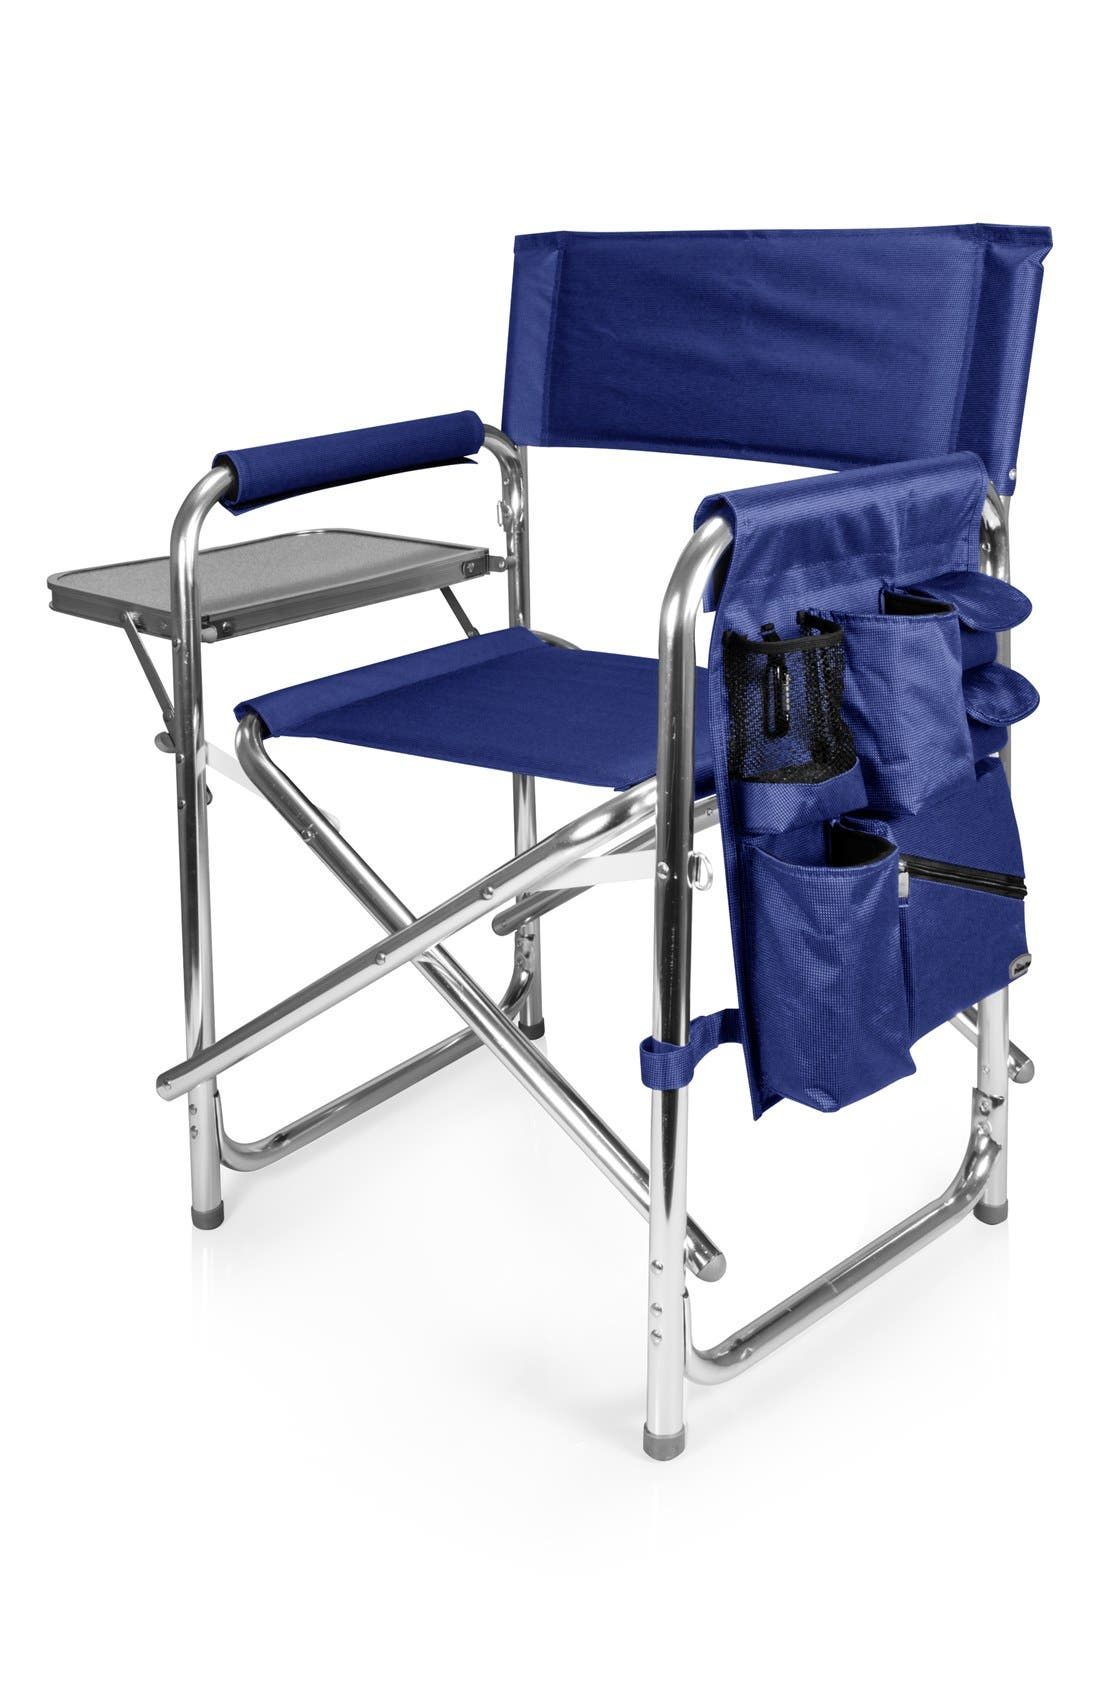 'Sports' Folding Chair,                             Main thumbnail 1, color,                             NAVY